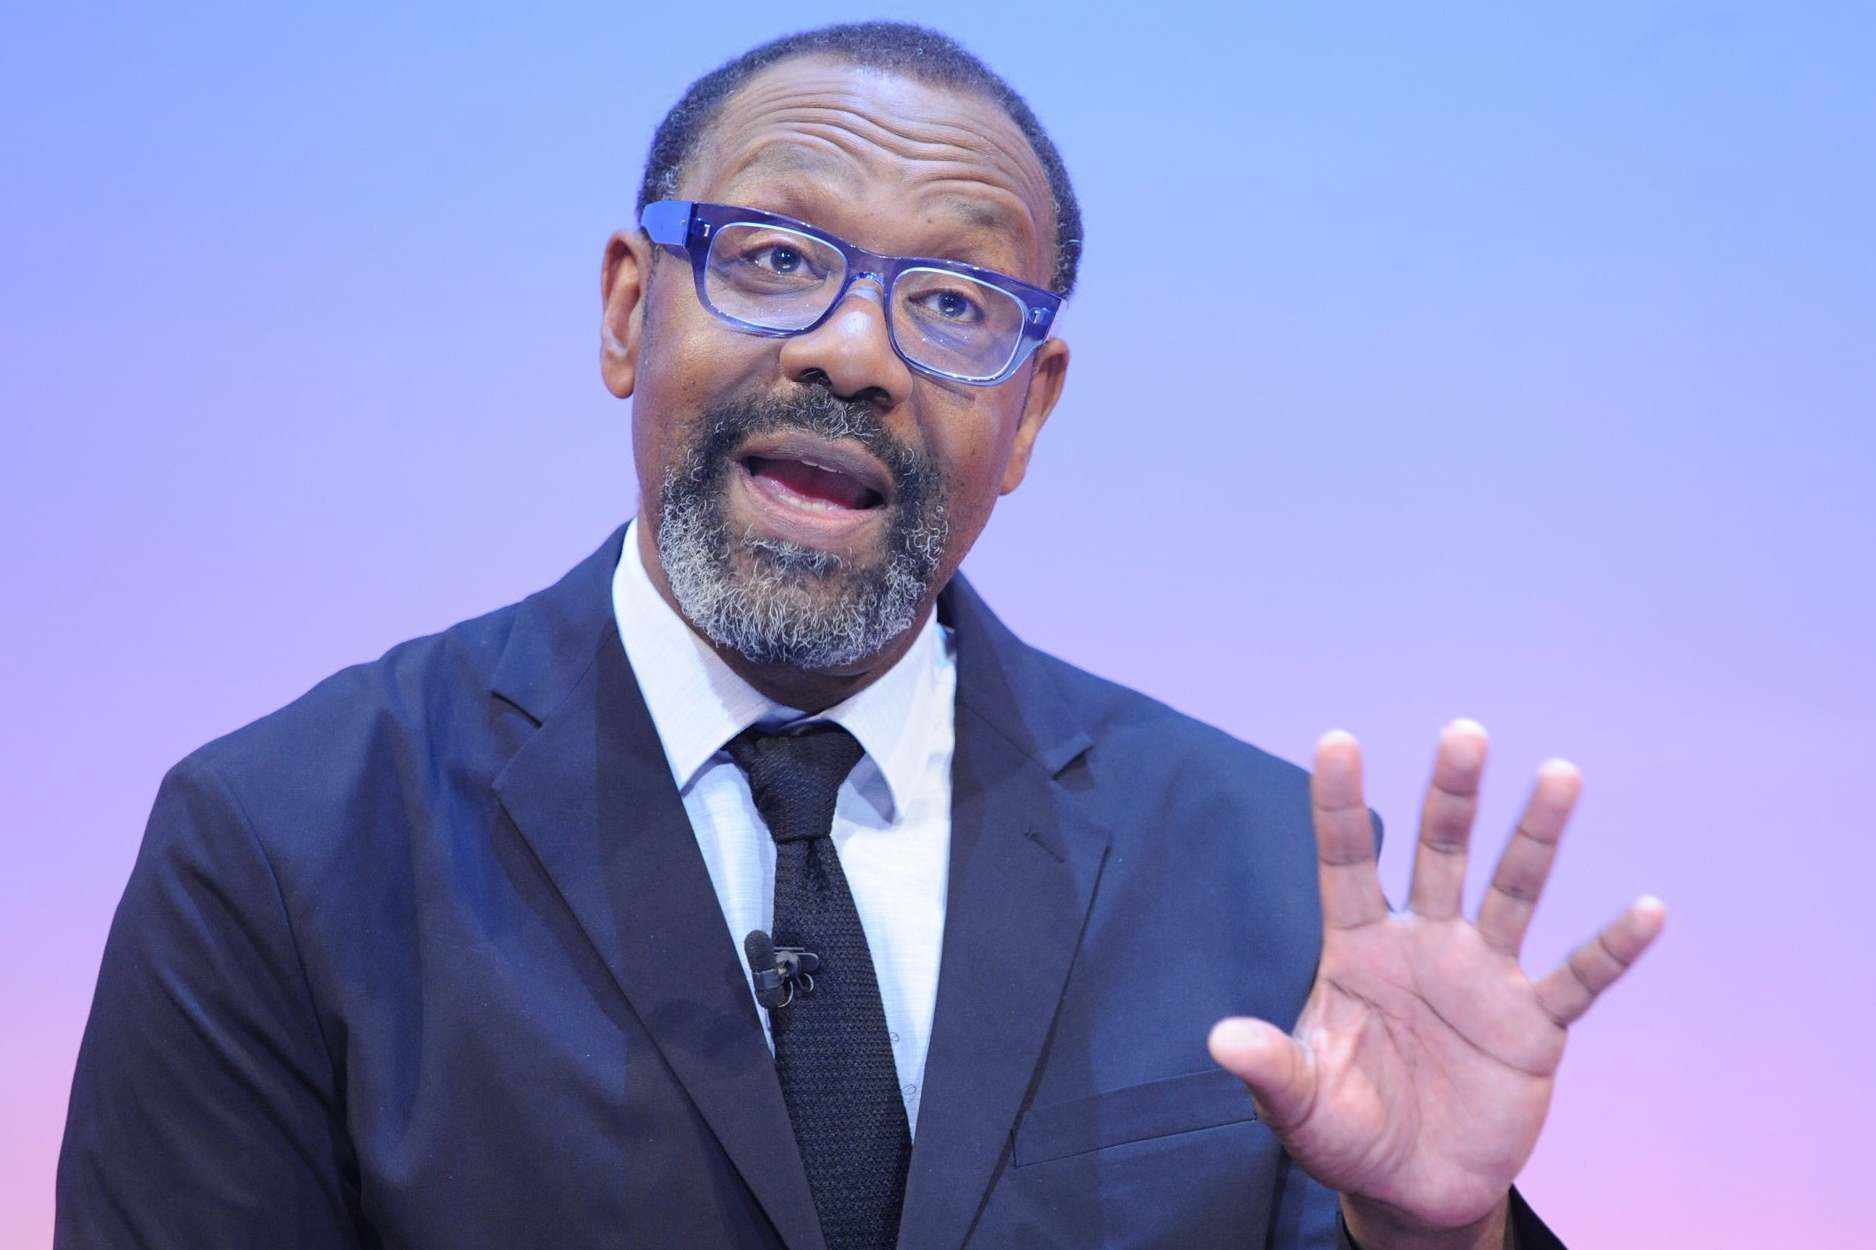 Lenny Henry speaks out about his mother beating him with her belt and shoes: 'I was frightened'